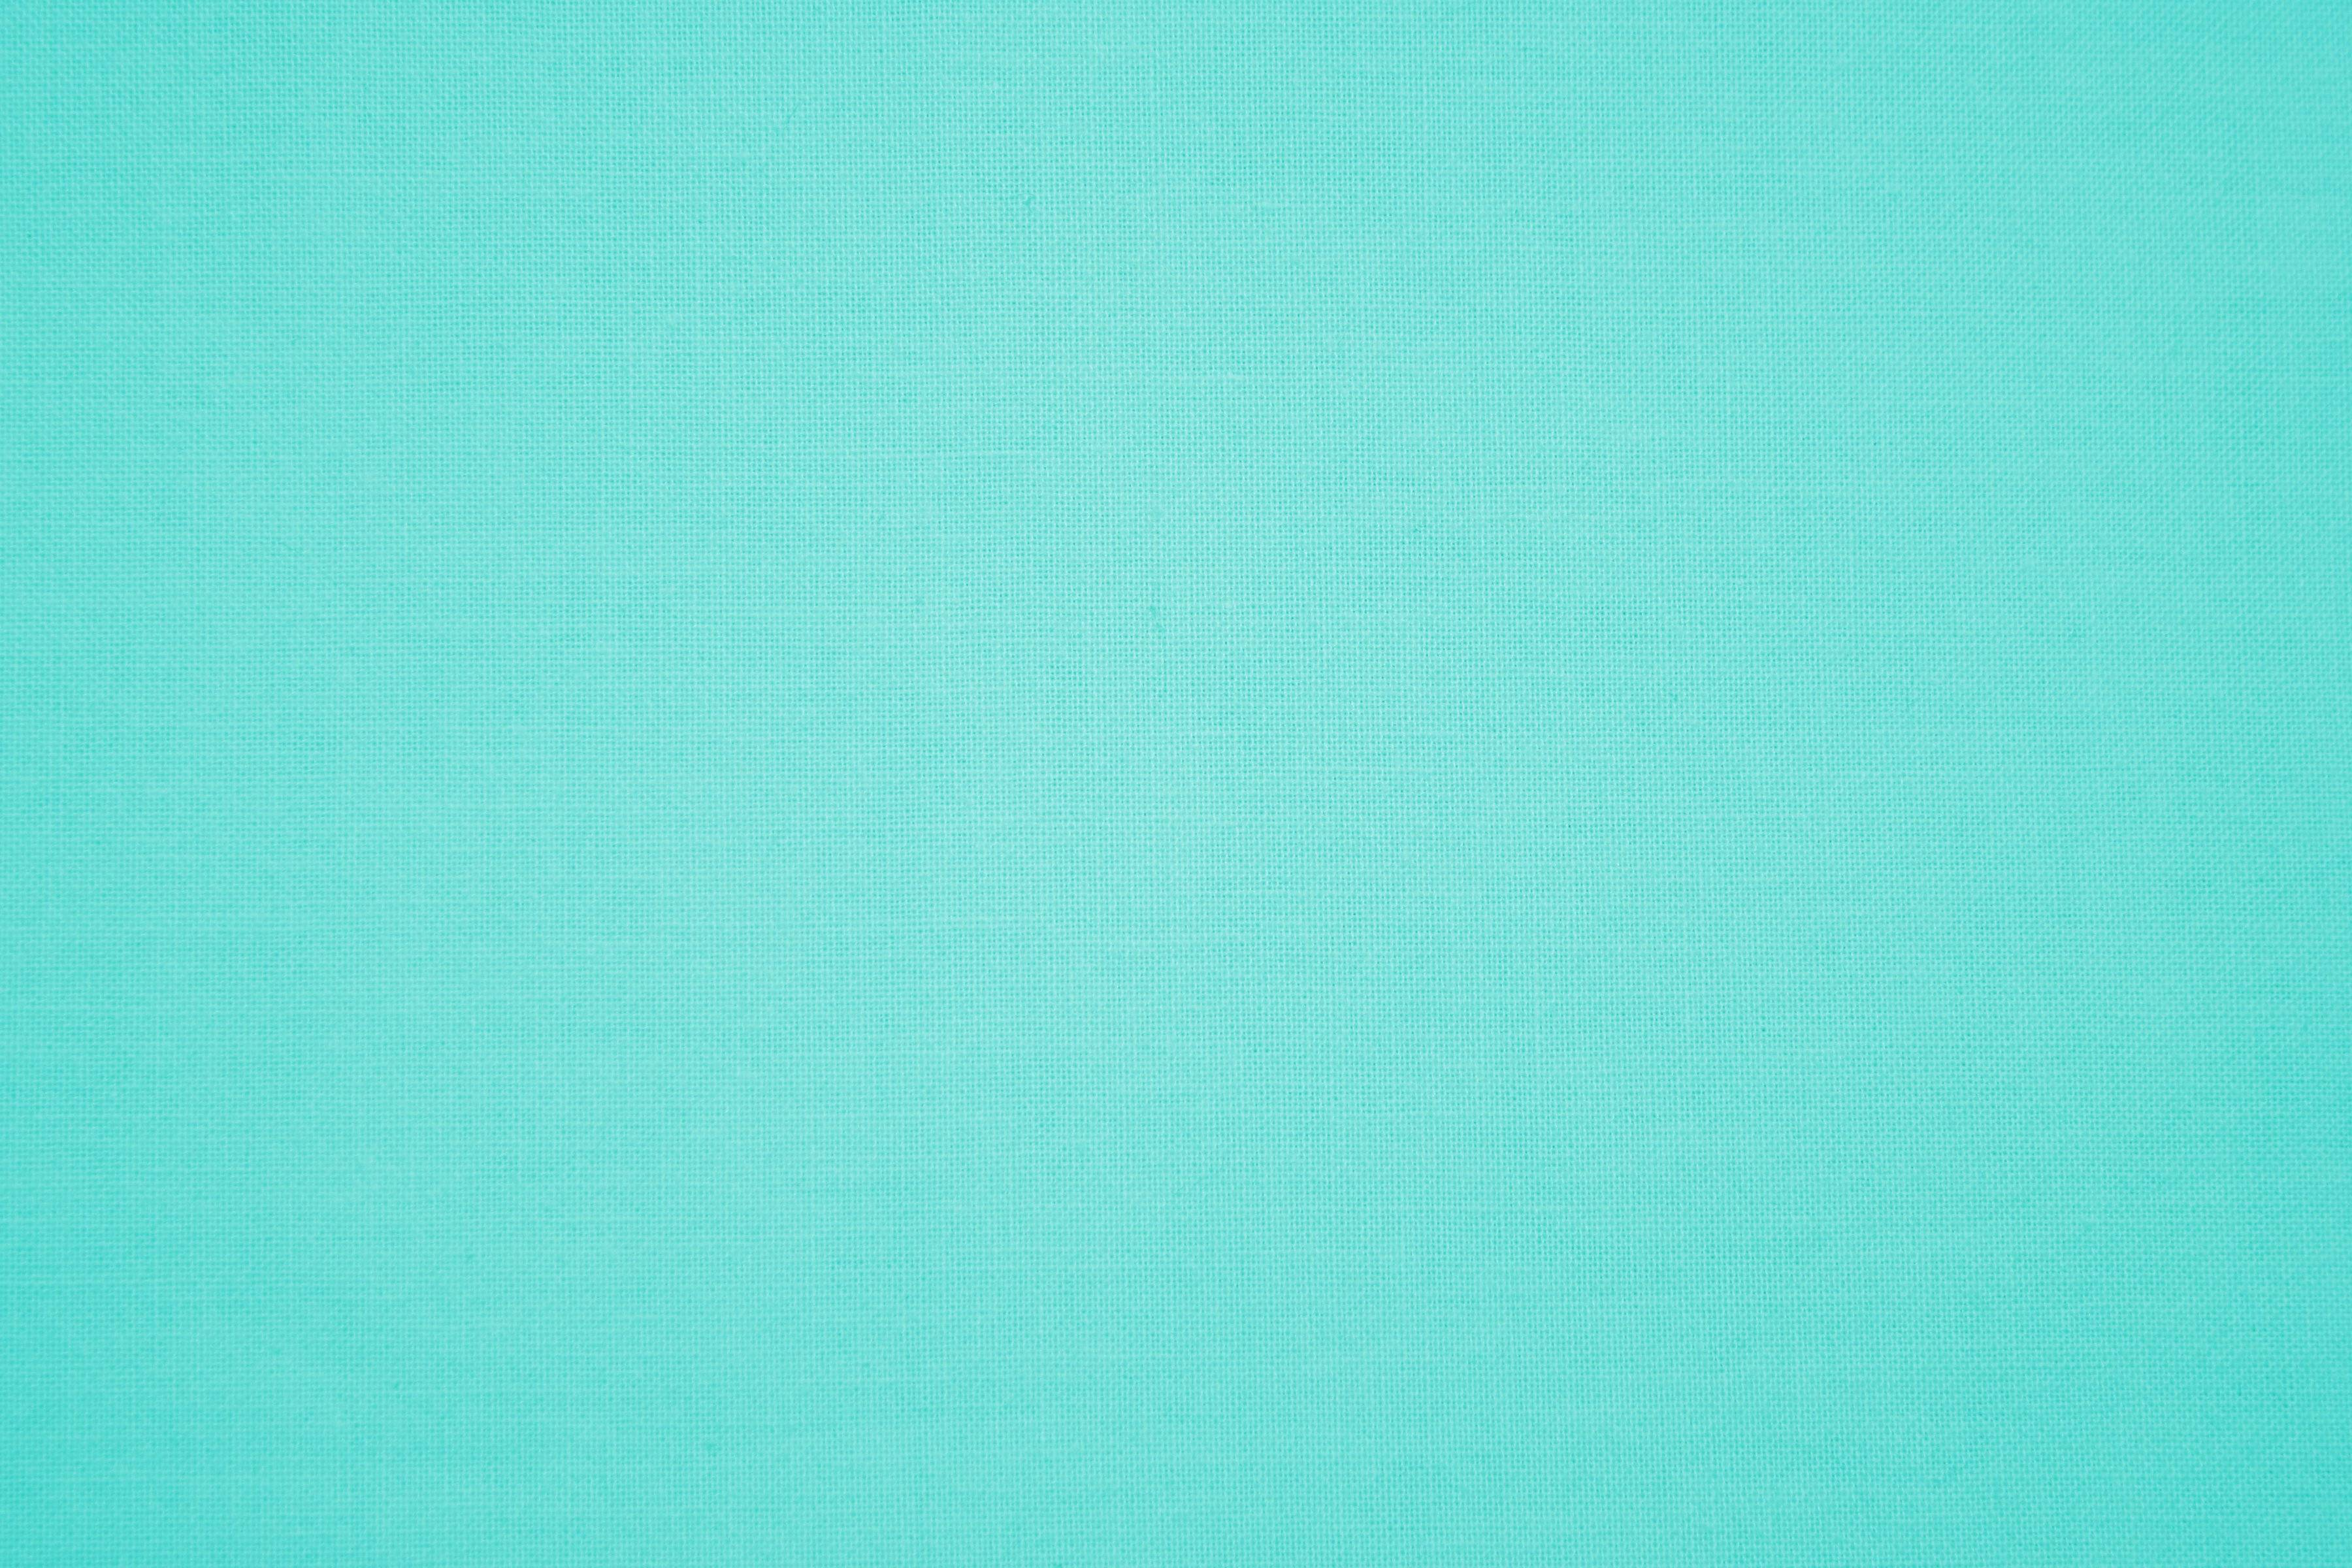 Wallpapers For > Turquoise Background Image